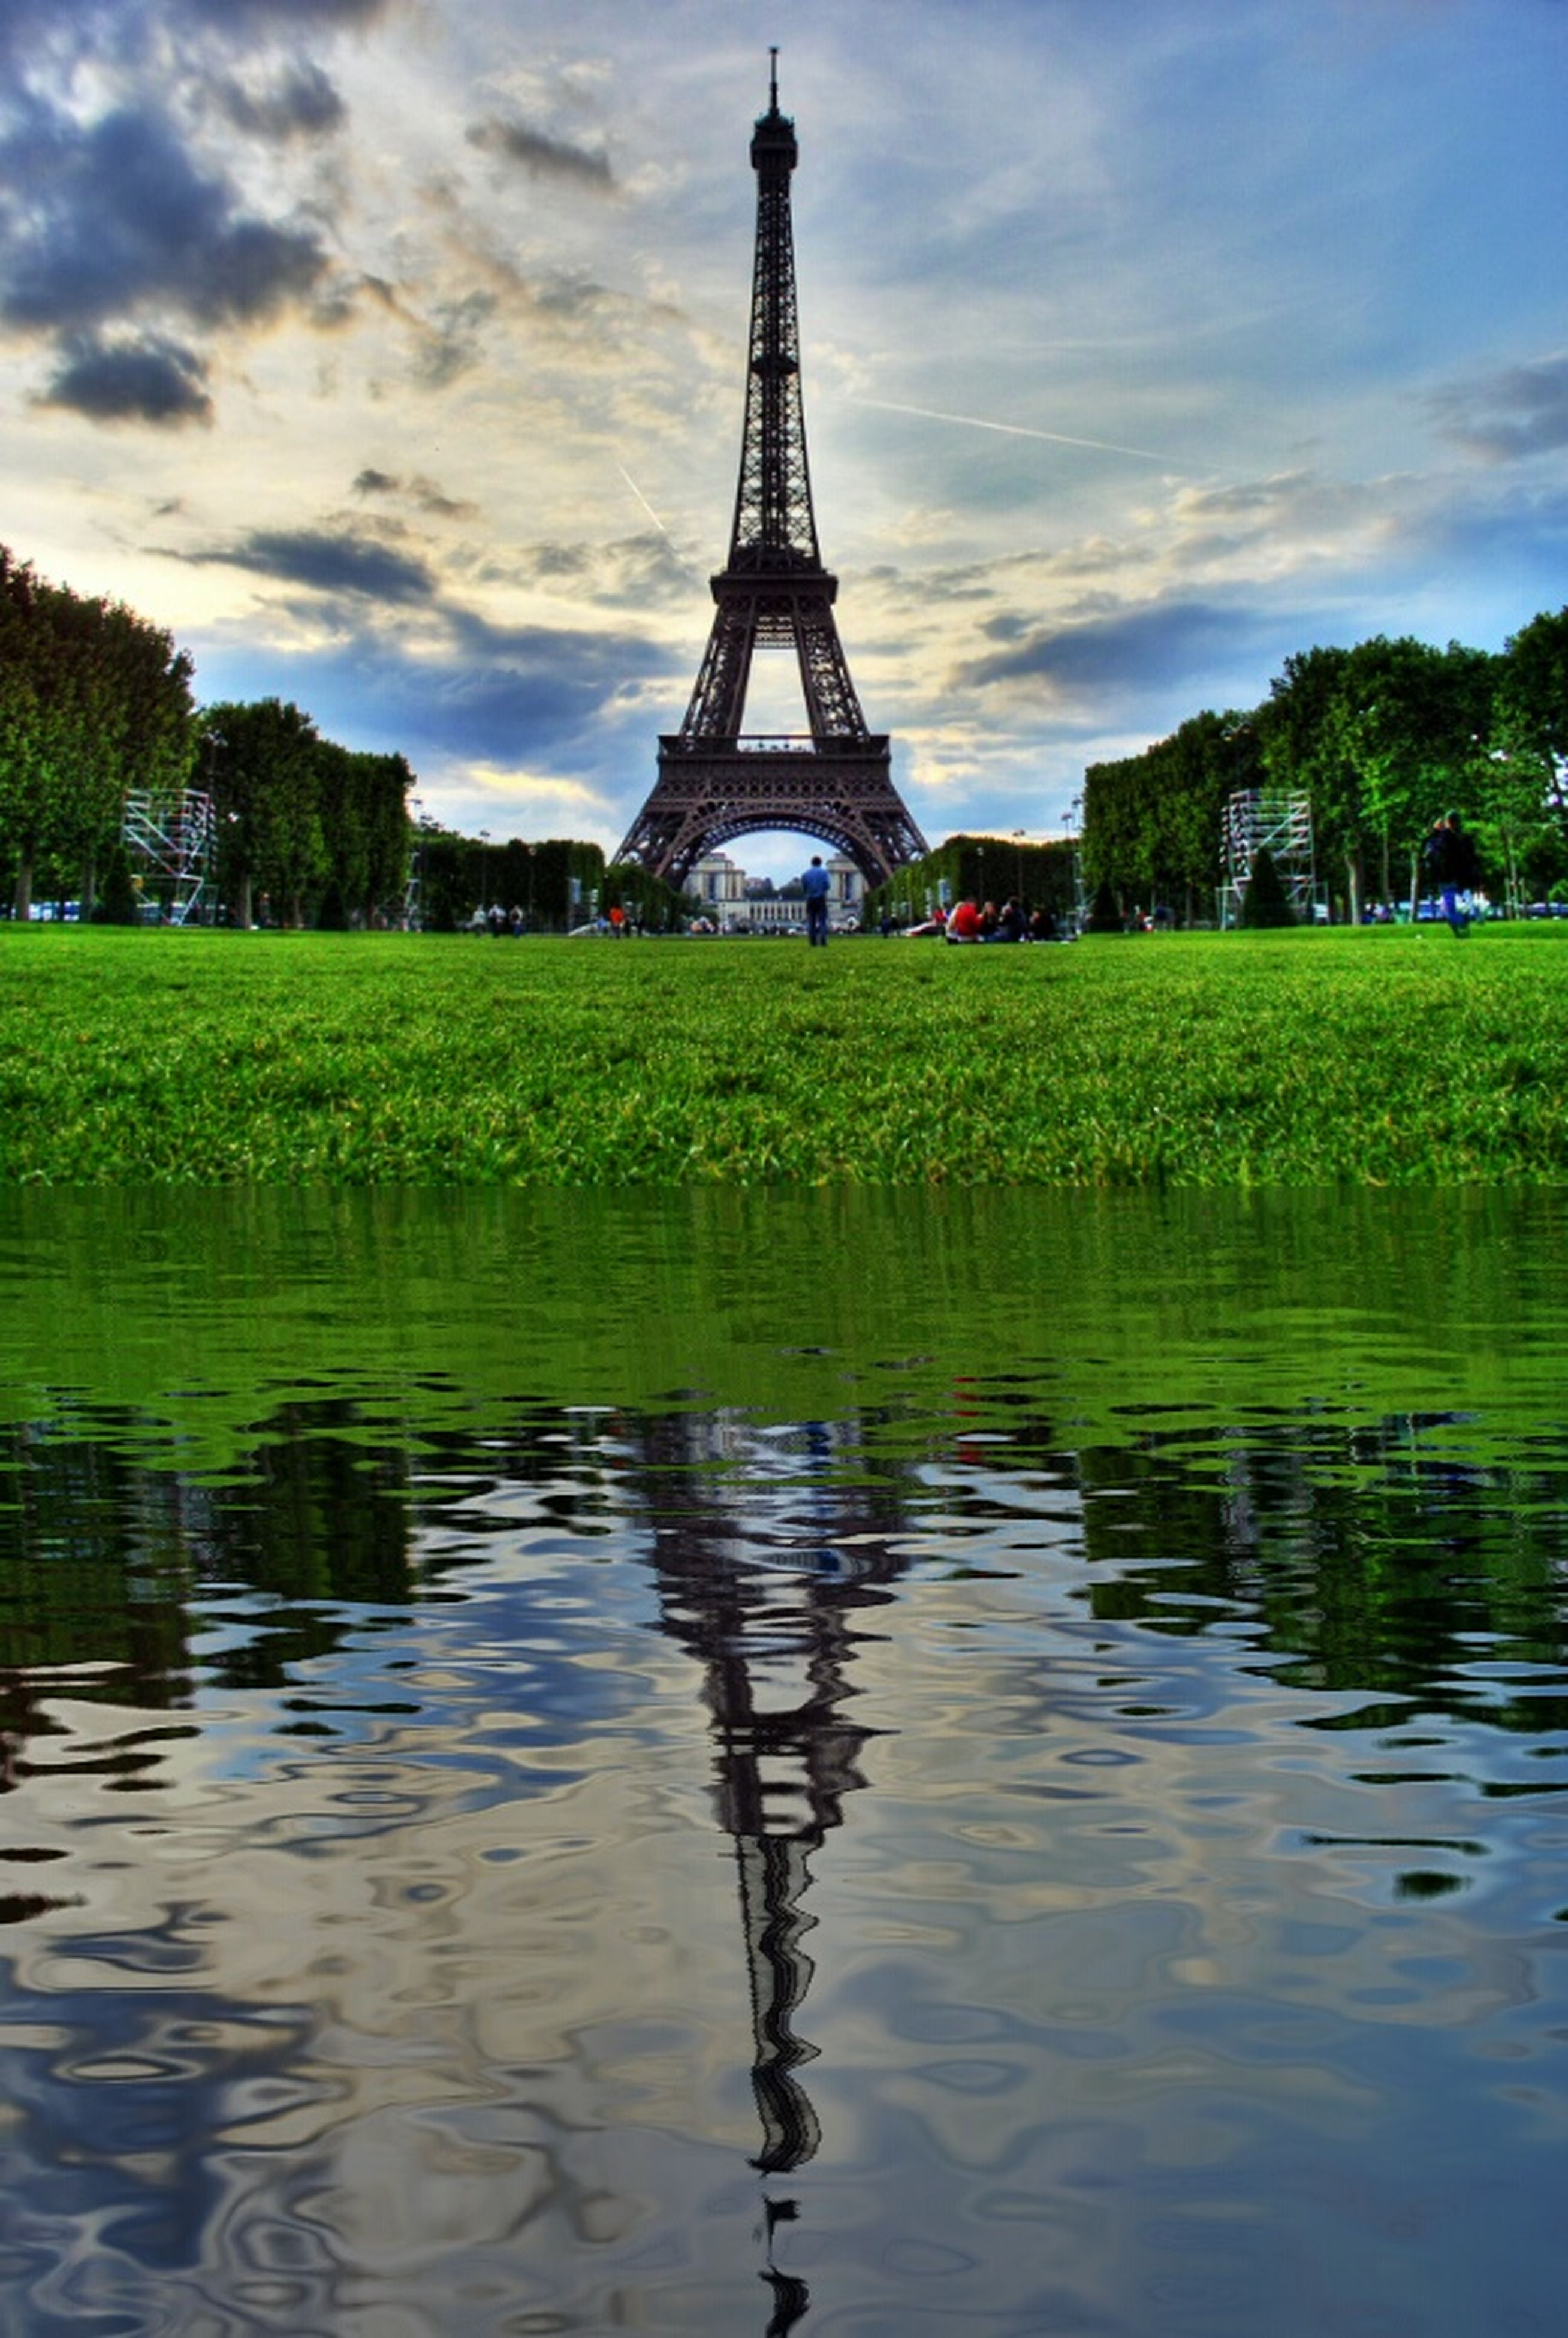 architecture, sky, built structure, water, building exterior, tree, cloud - sky, reflection, grass, tower, travel destinations, river, waterfront, famous place, cloud, green color, cloudy, lake, history, tourism